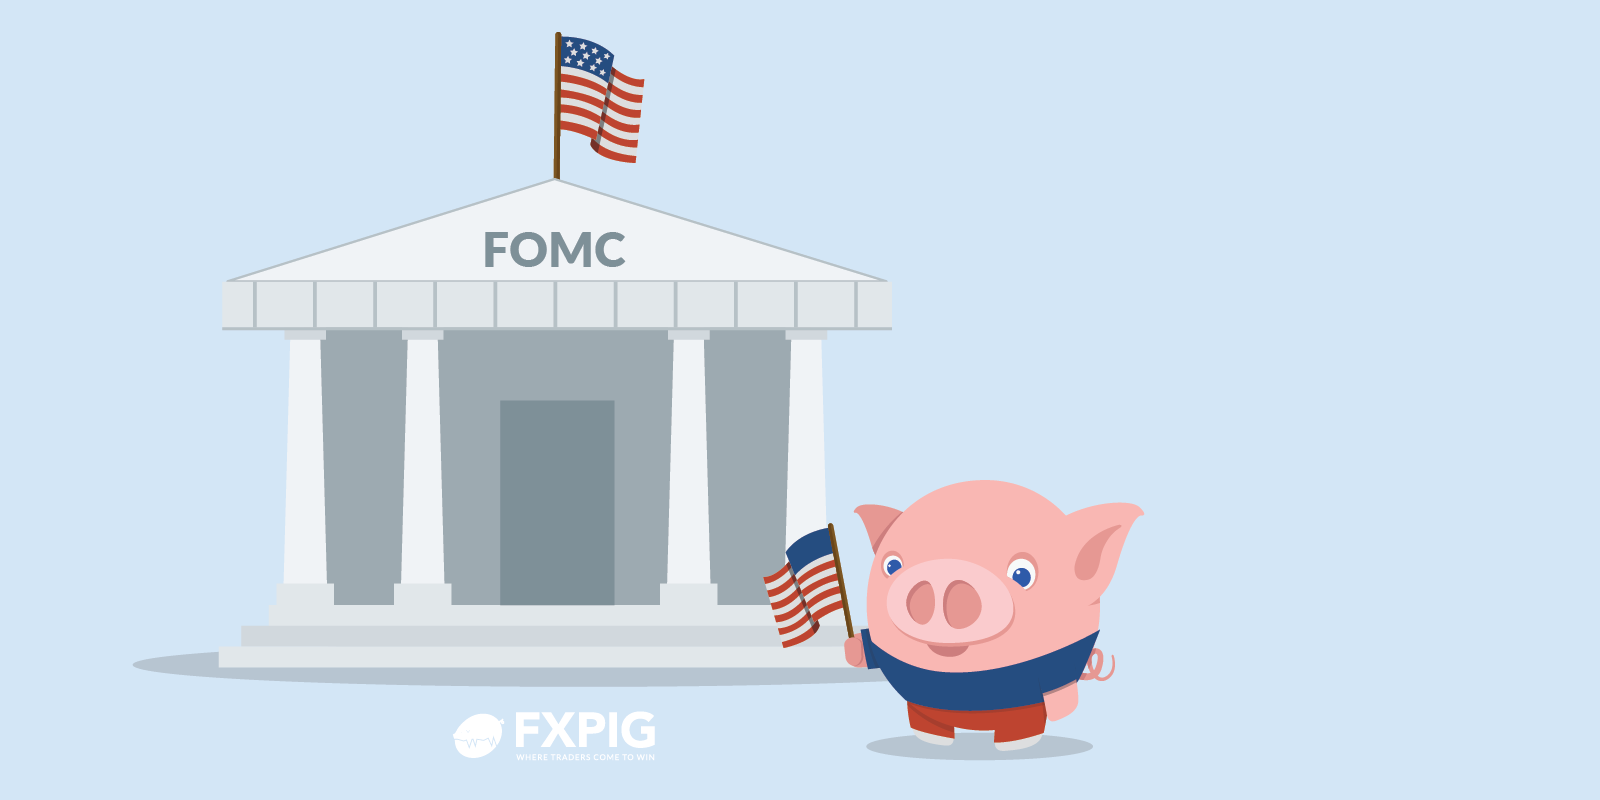 FOMC_Preview_17-banks_FOREX_FXPIG